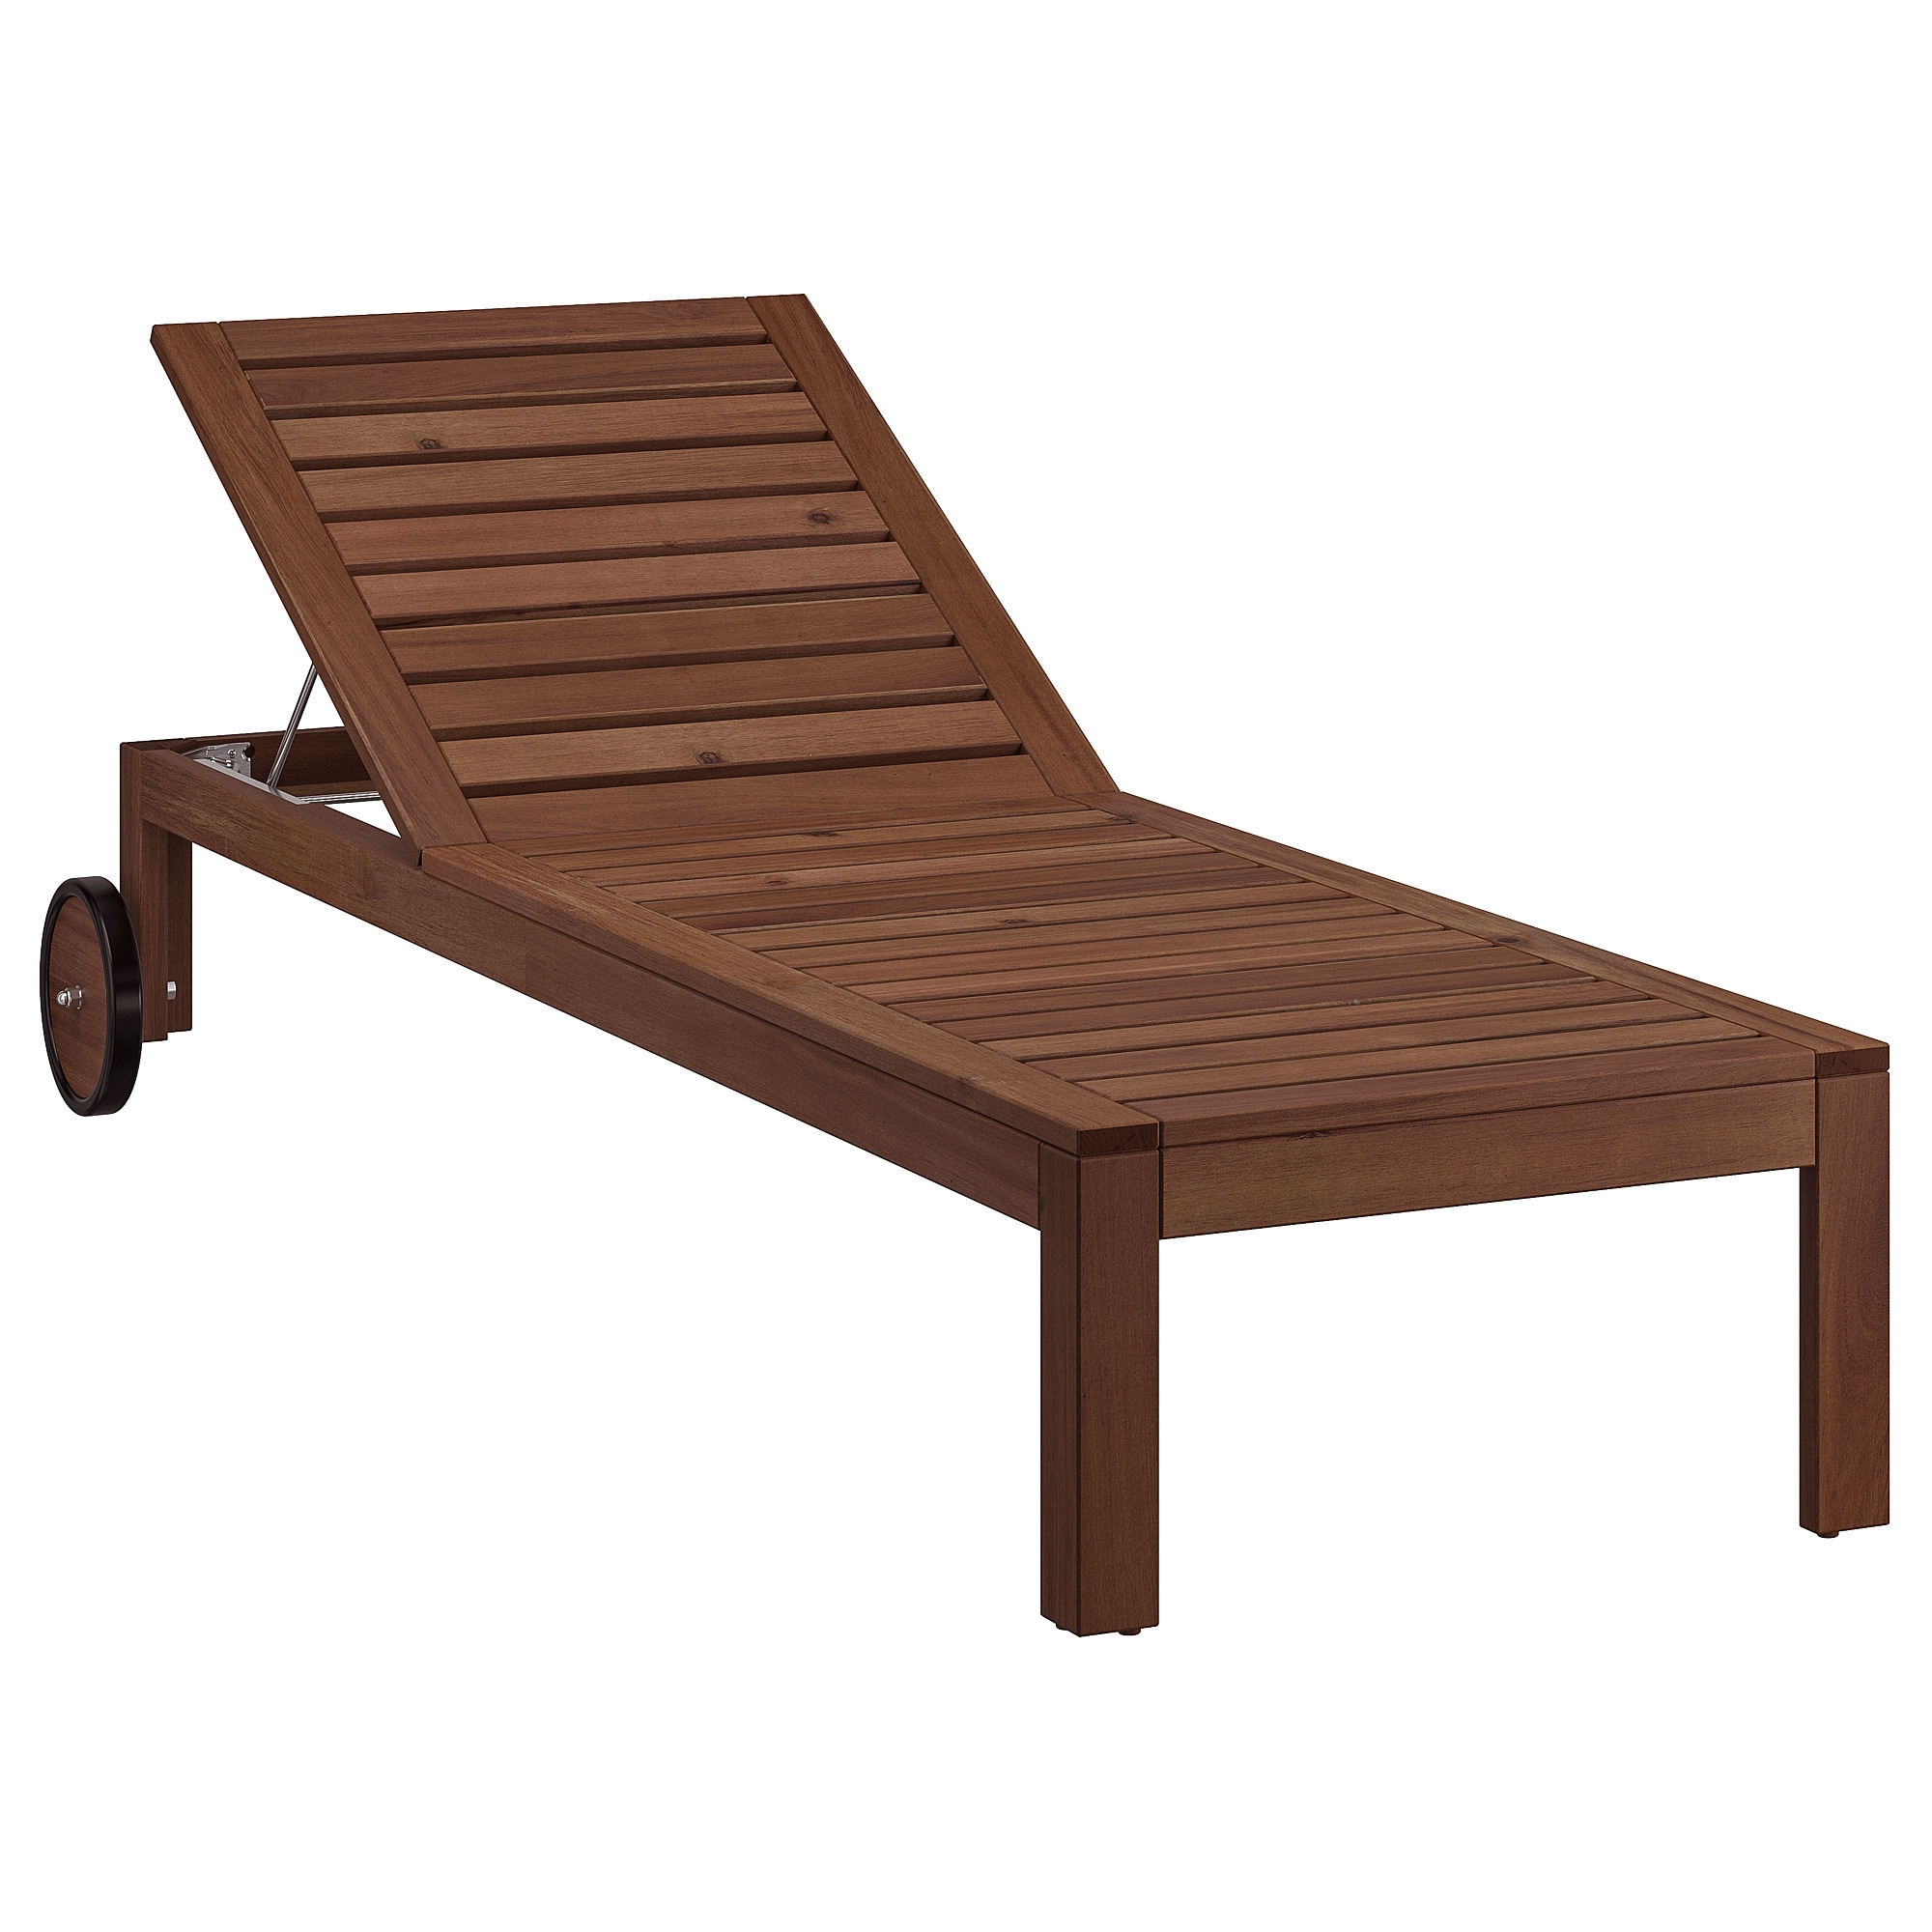 Best And Newest Outdoor 3 Piece Acacia Wood Chaise Lounge Sets With Chaise Äpplarö Brown Stained Brown (View 19 of 25)